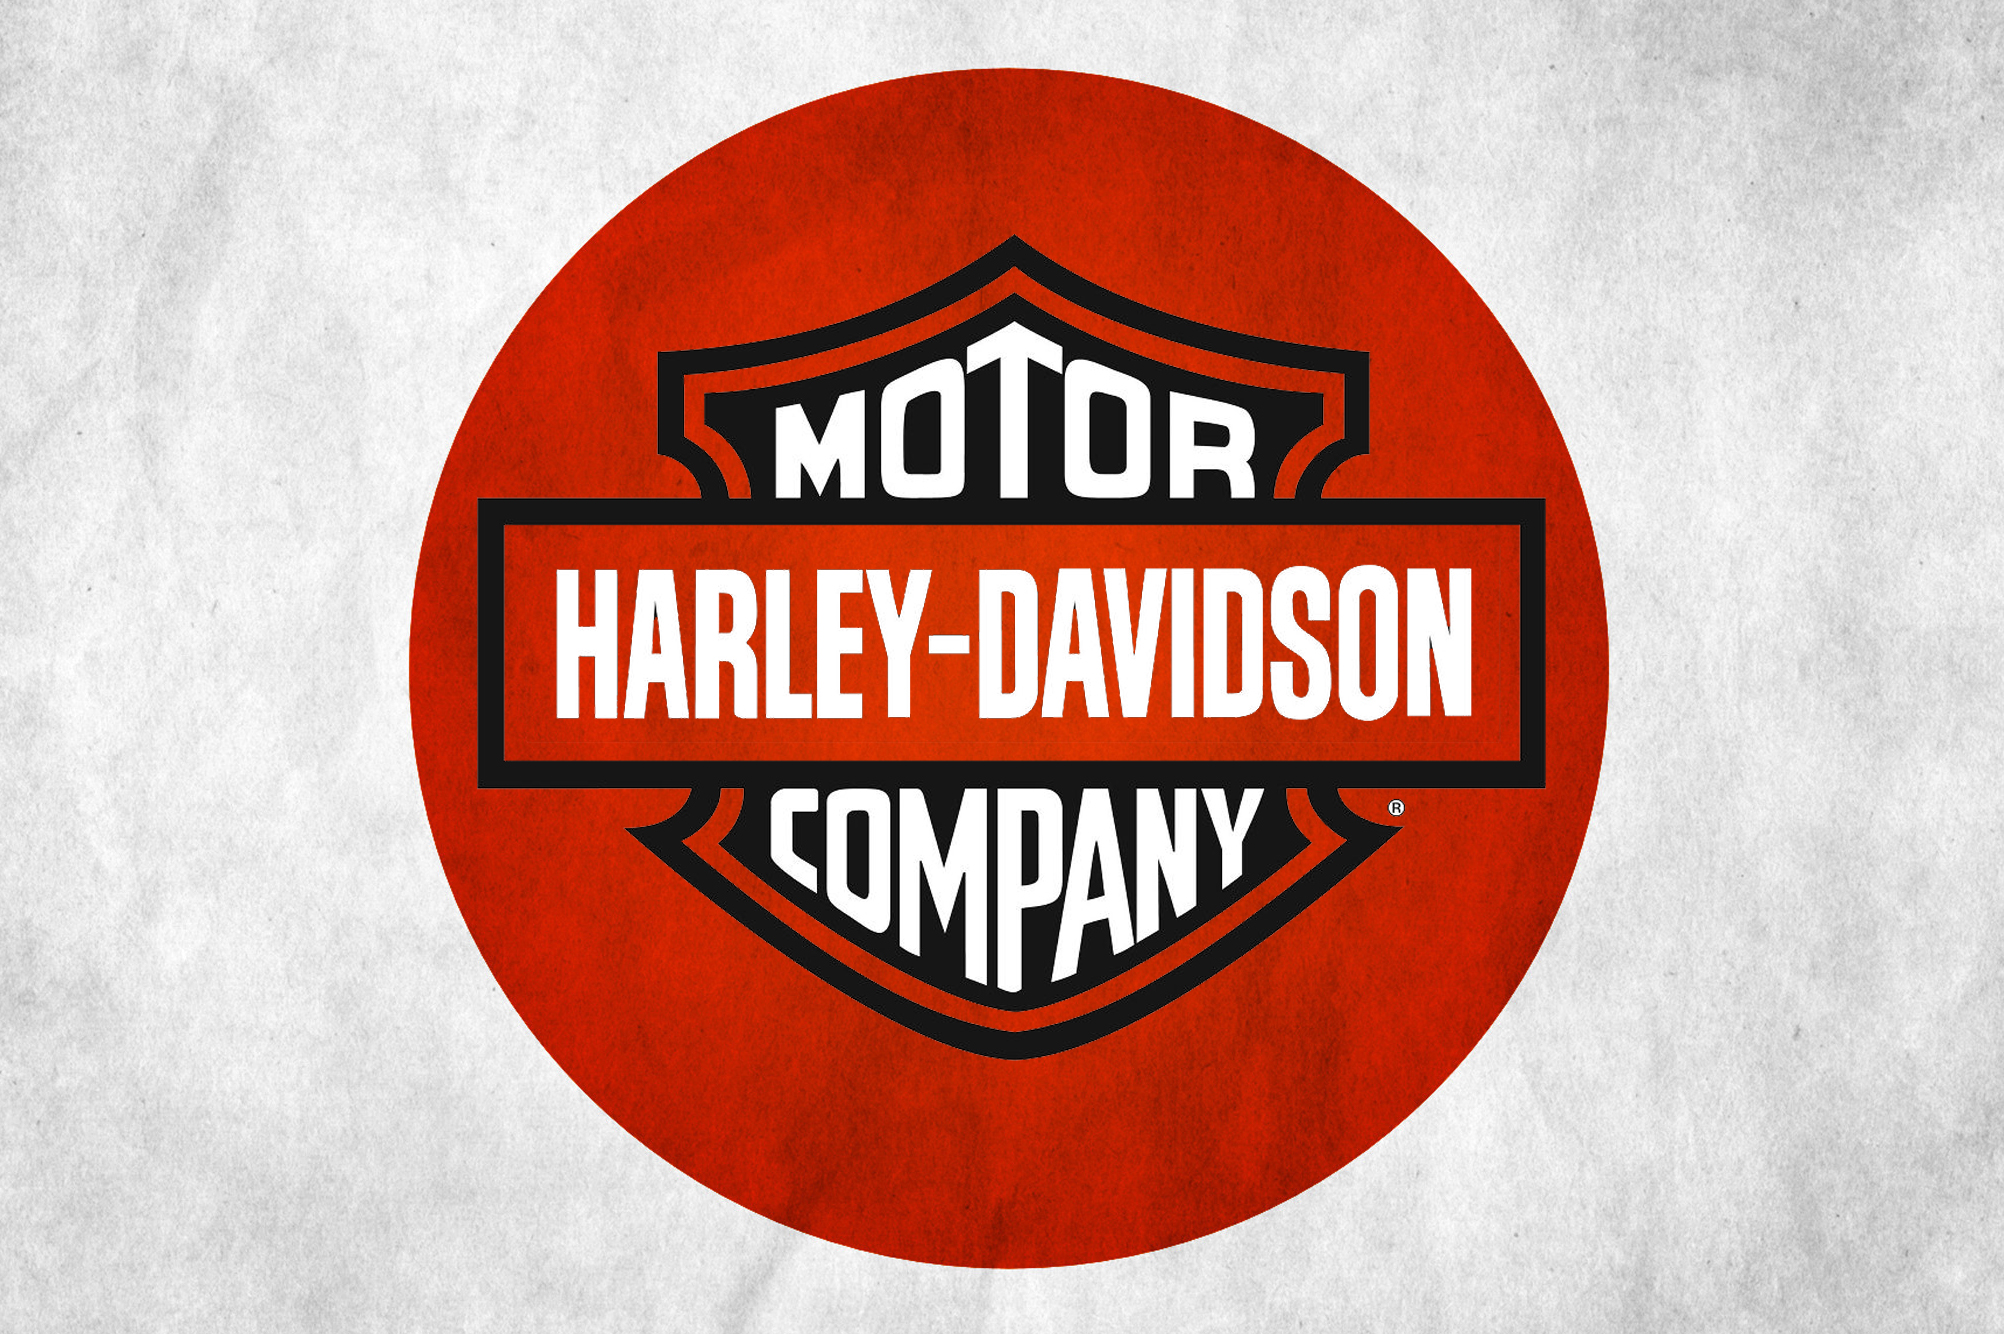 Harley Davidson acquired by Japanese owned Kawasaki Motor Company